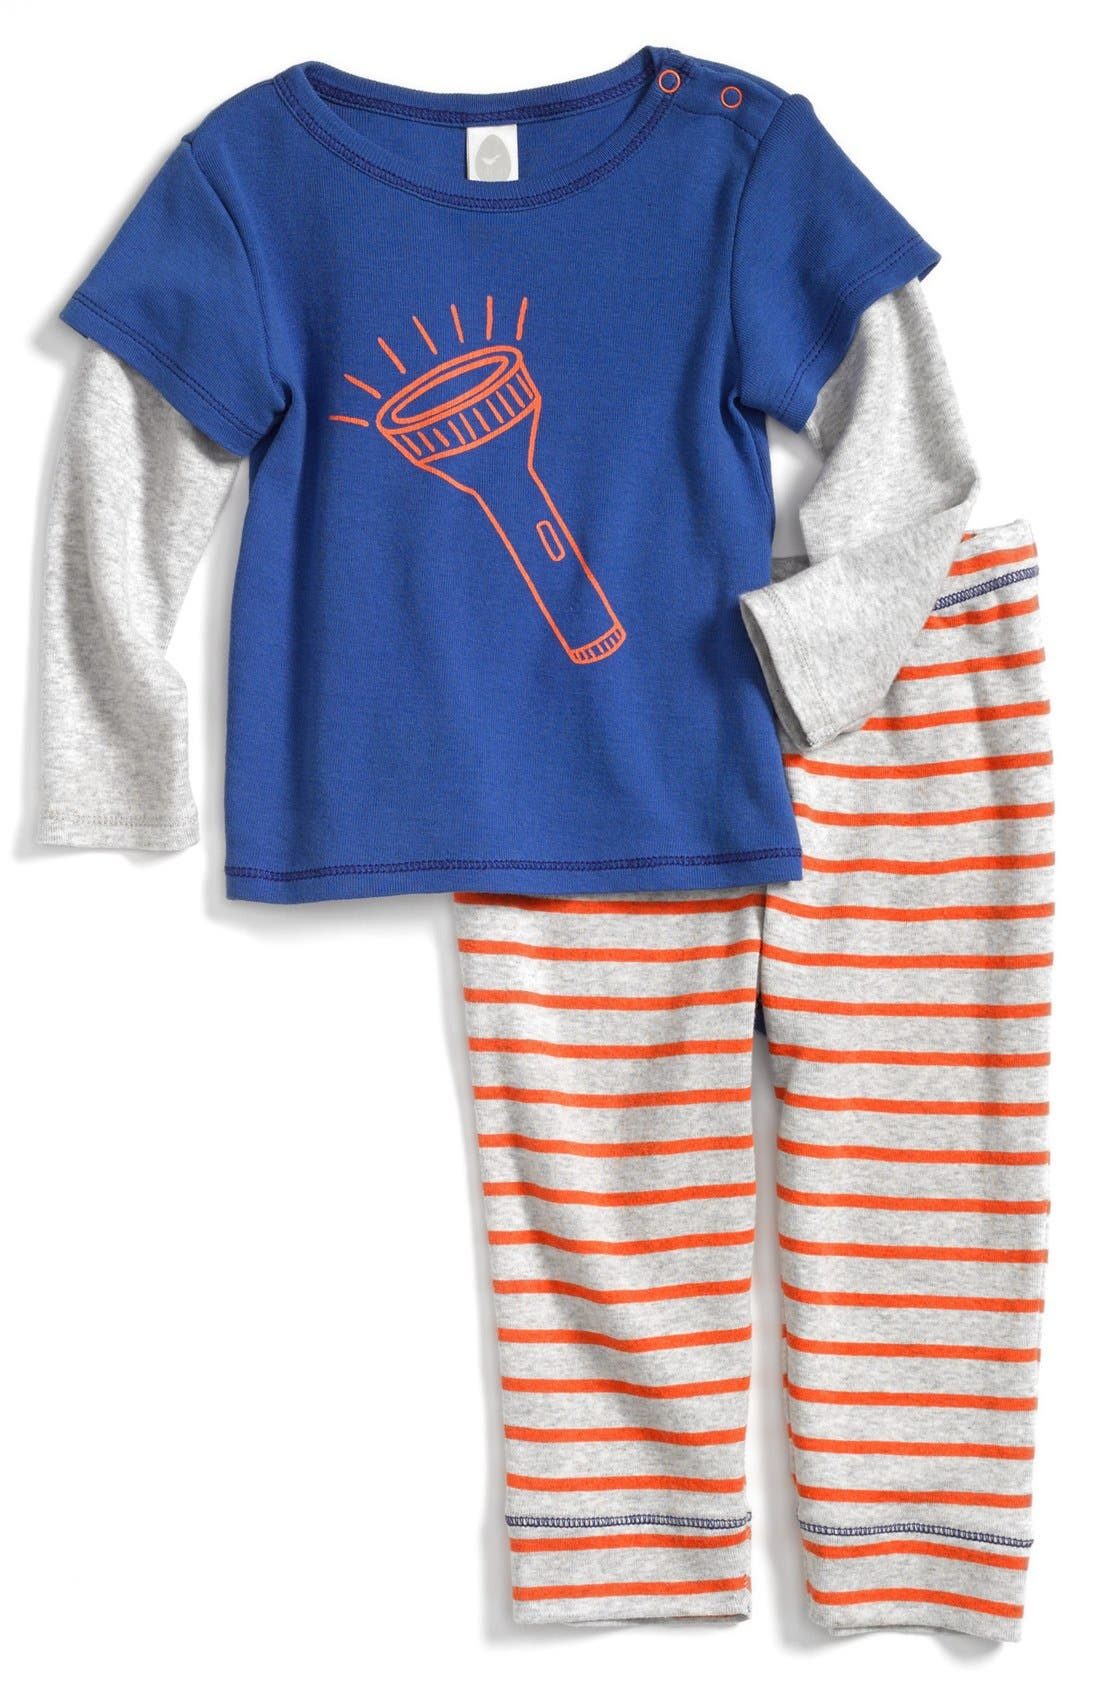 Main Image - Stem Baby Graphic Cotton Top & Pants (Baby Boys)